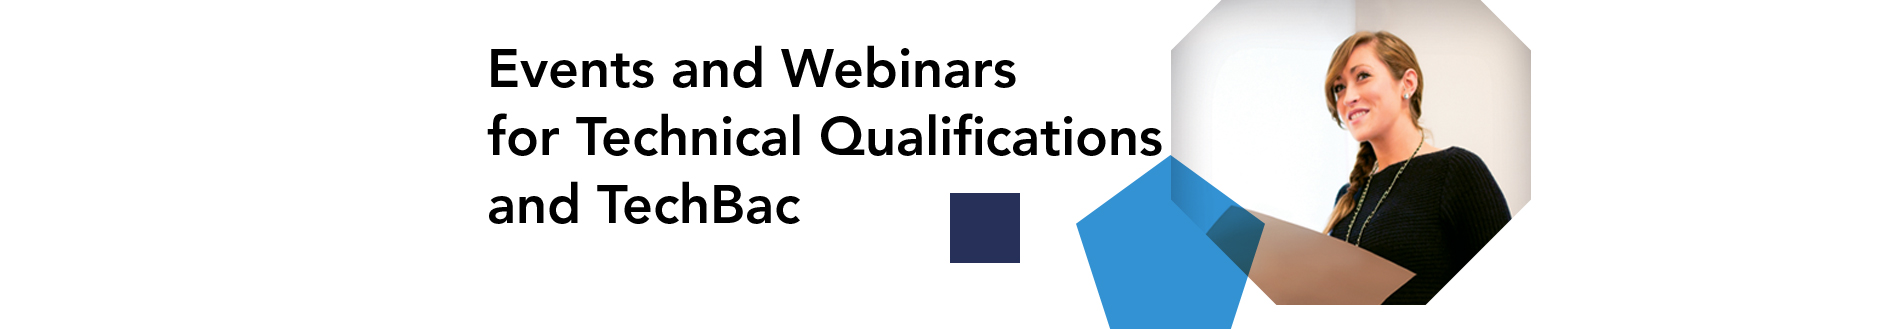 events and webinars for technical qualifications and techbac banner